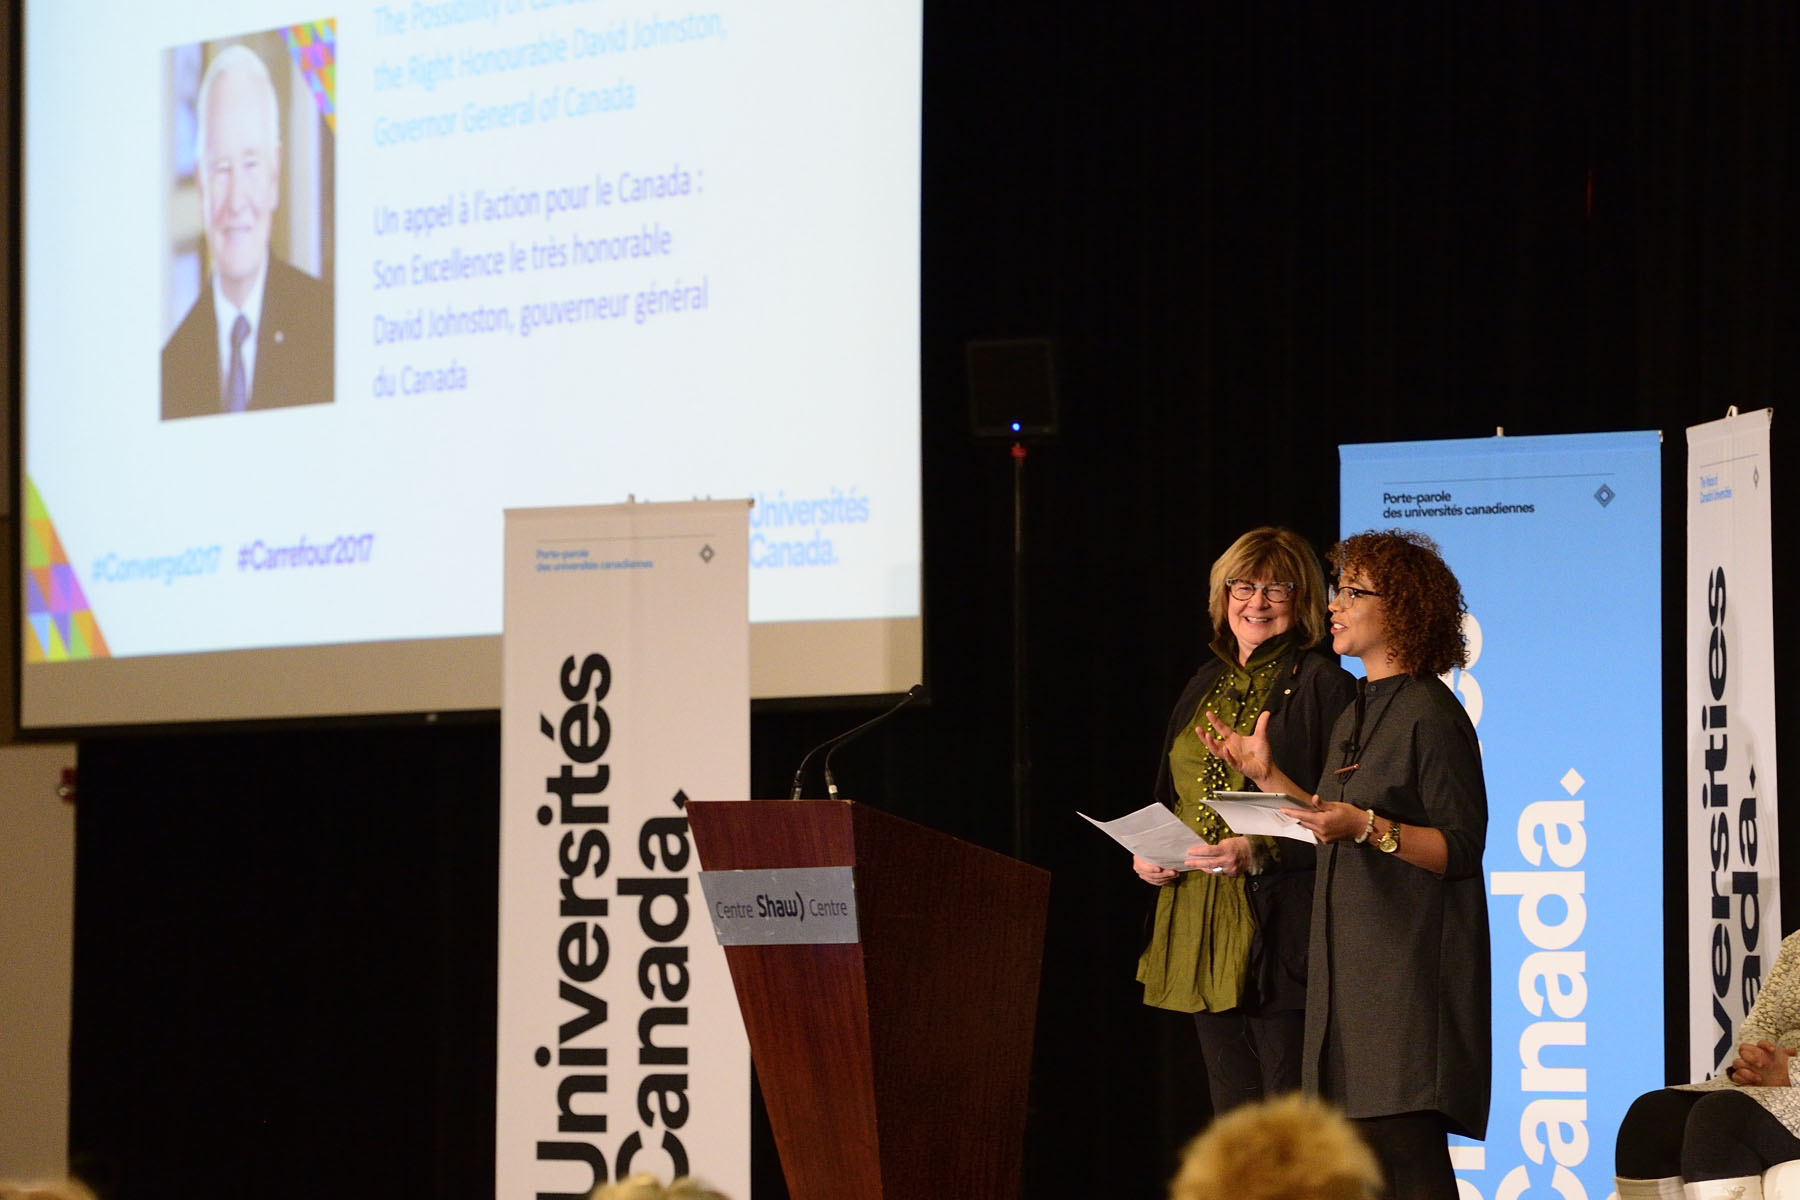 Converge 2017 was a dialogue hosted by Universities Canada. The MCs for the event were Shelagh Rogers and Myriam Fehmiu.